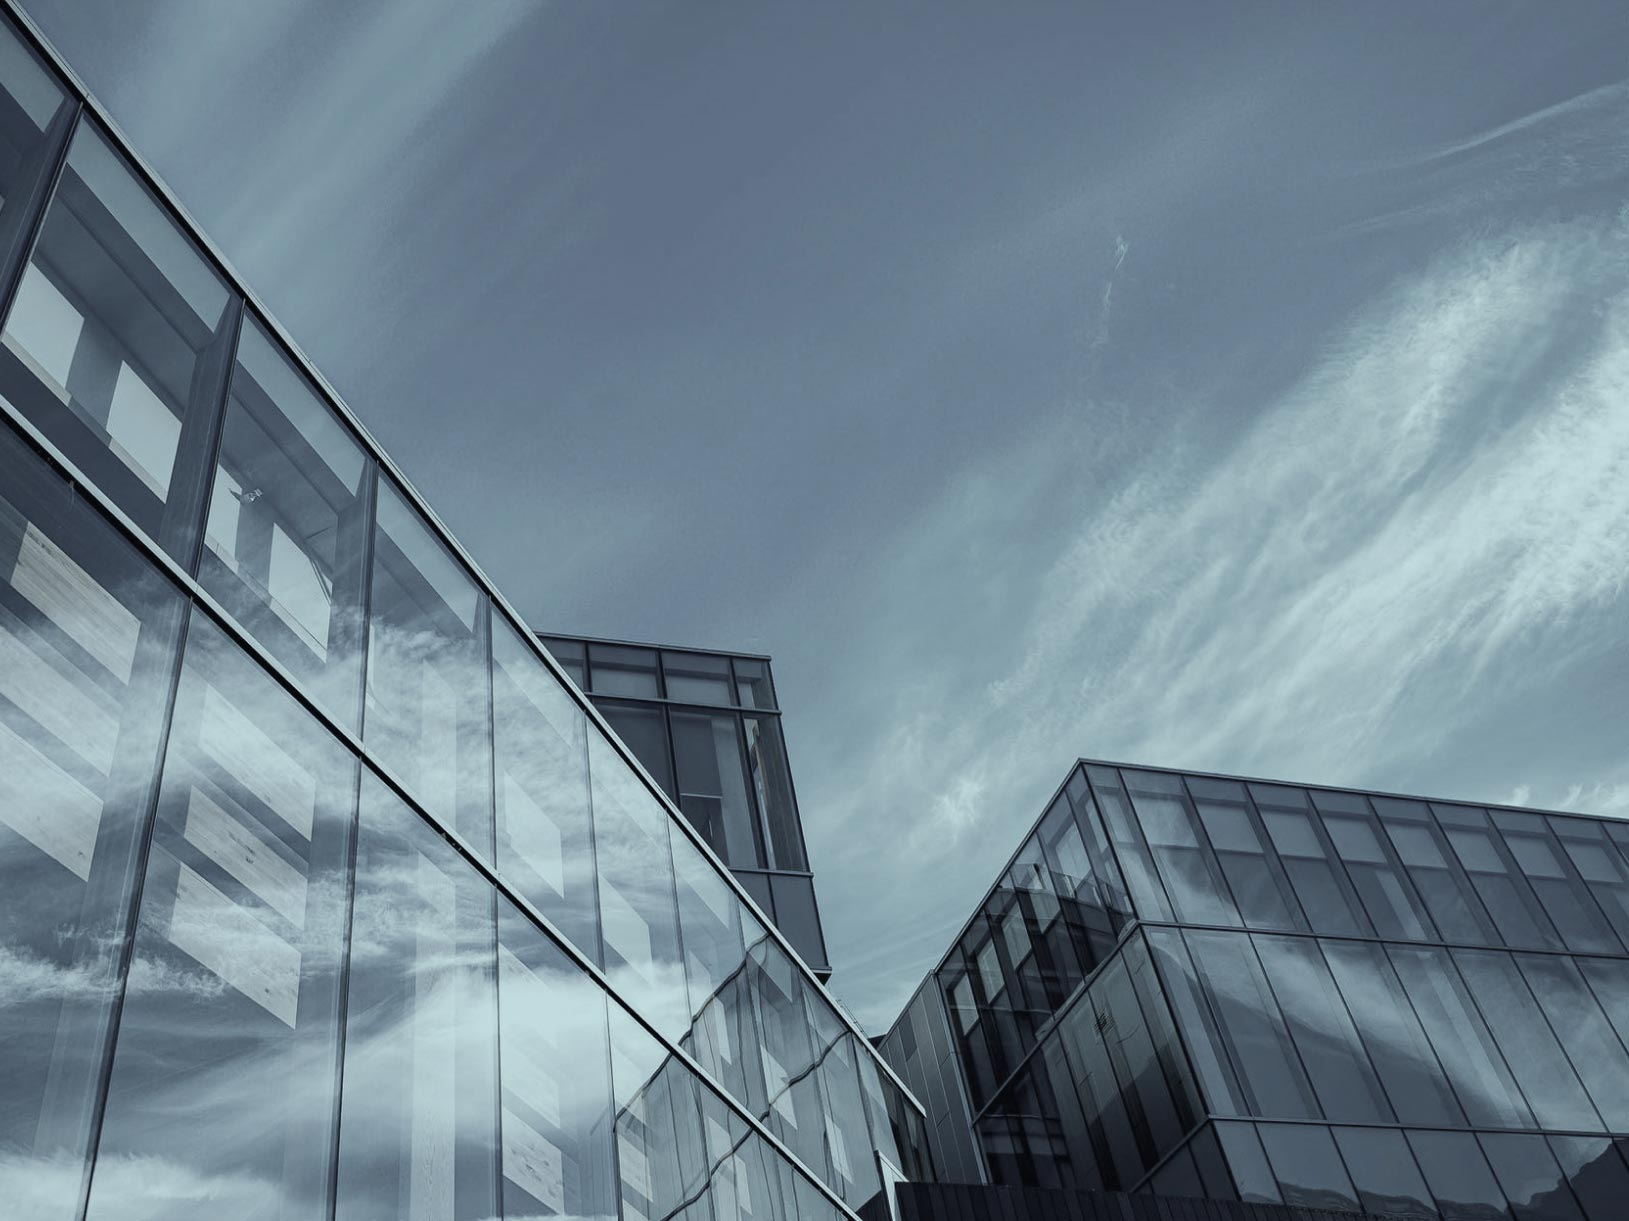 Decorative image of a sky showing the tops of modern office buildings